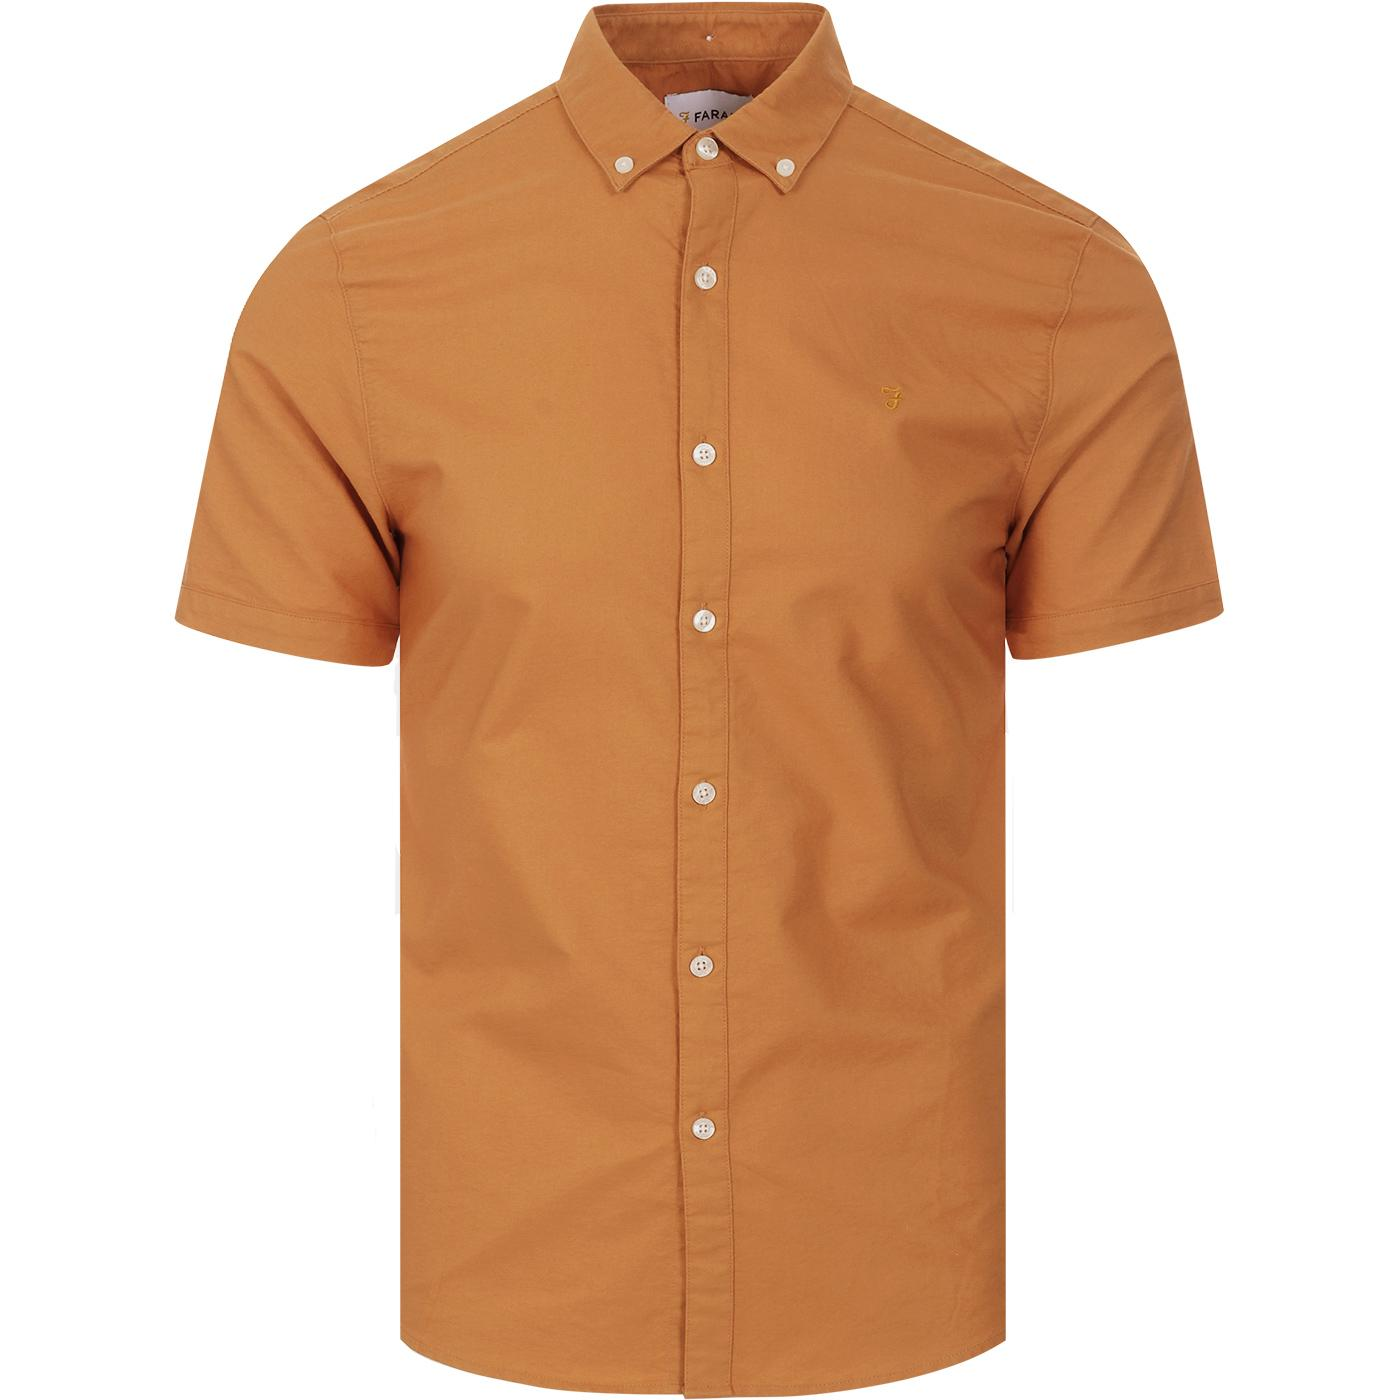 Brewer FARAH Mod S/S Oxford Shirt (Pale Orange)